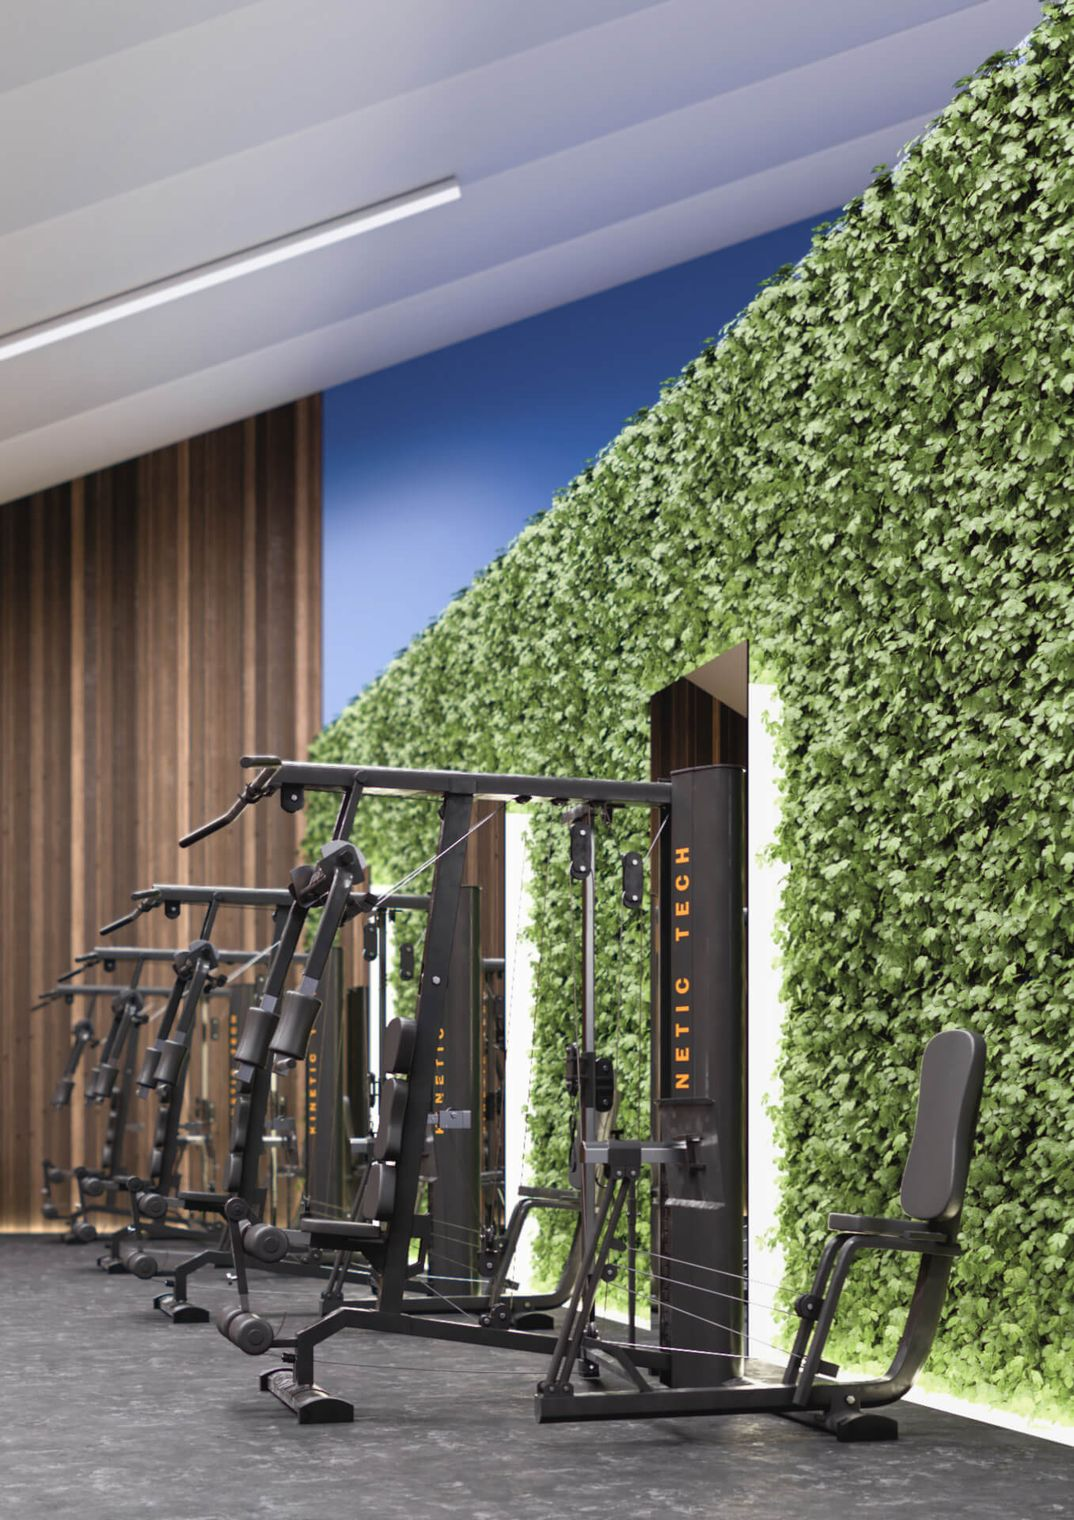 Fitness Center - Interior Design